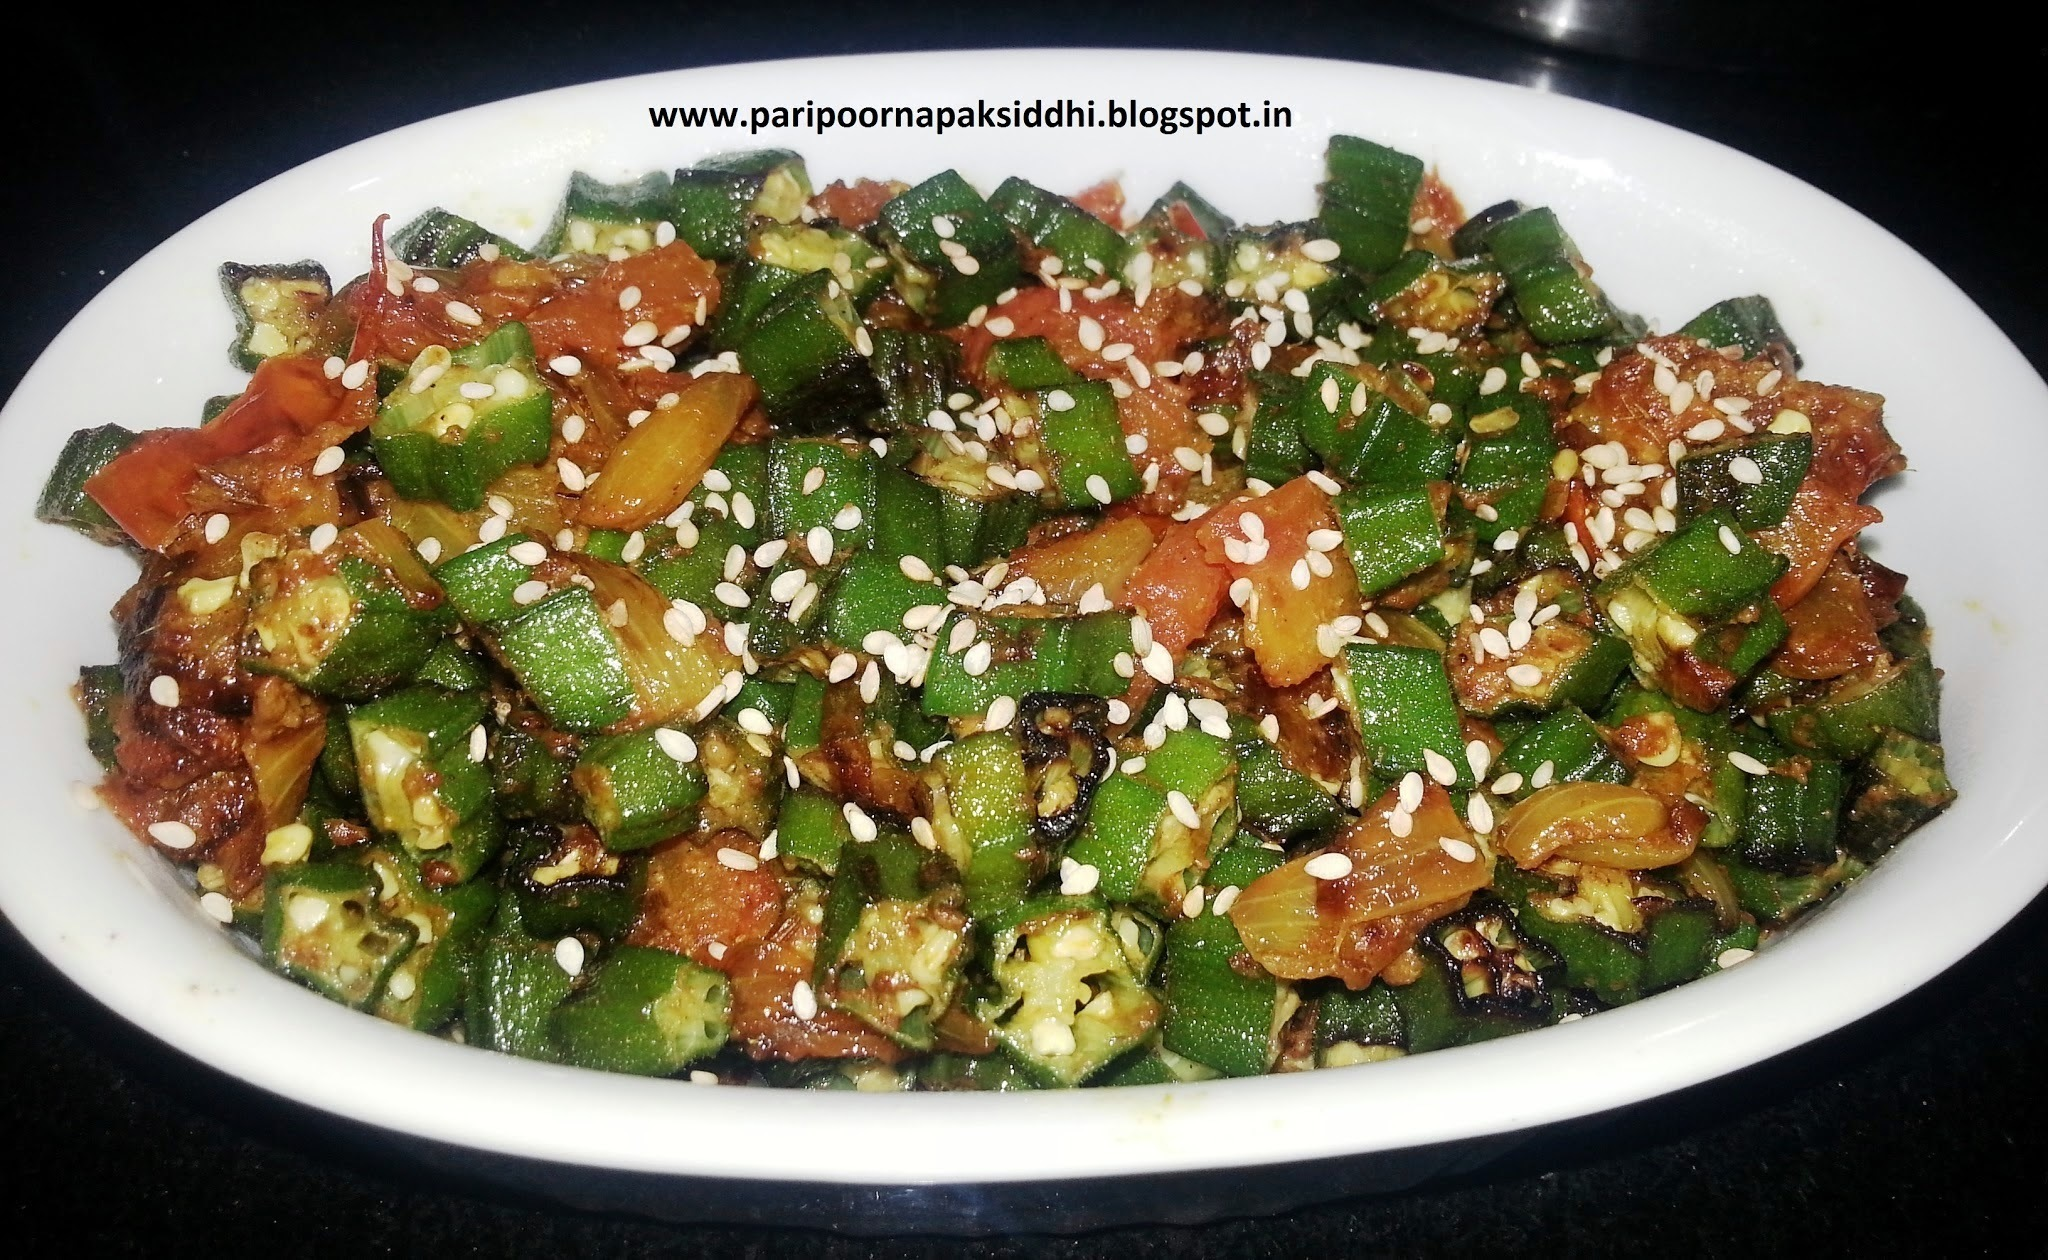 BHINDI DO PYAZA / STIR FRIED LADYFINGER OR OKRA WITH ONIONS